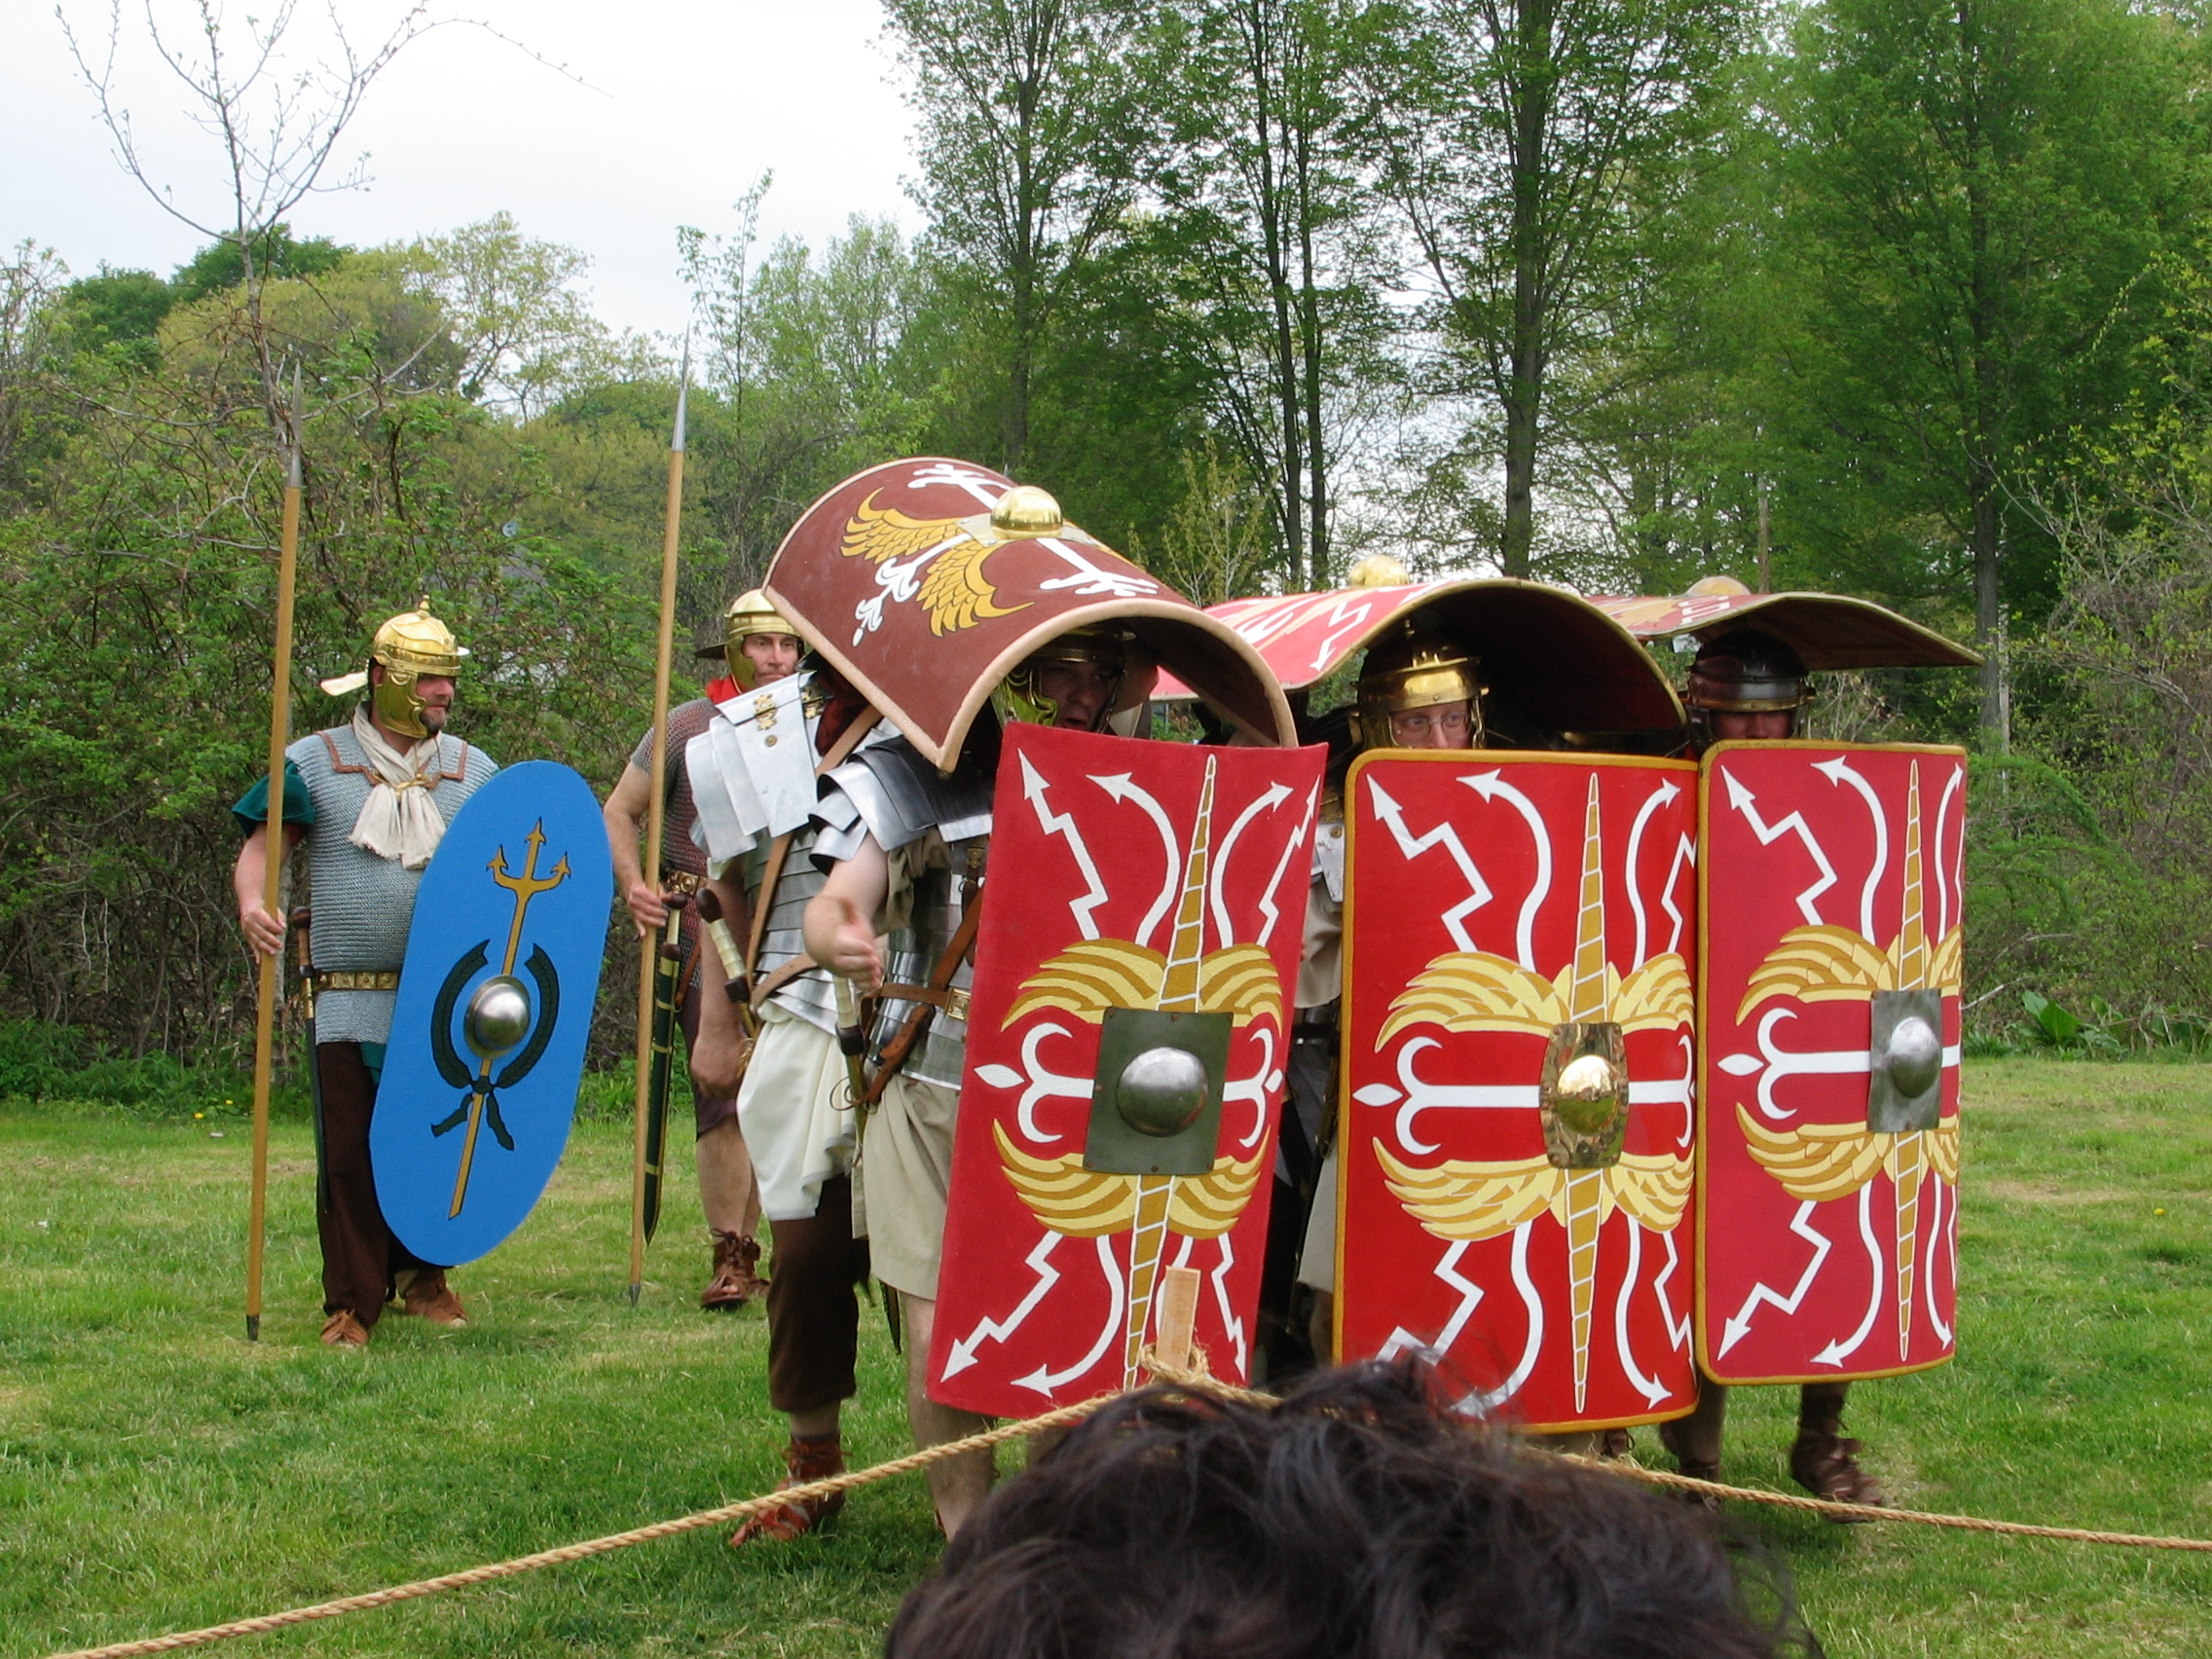 roman military formation